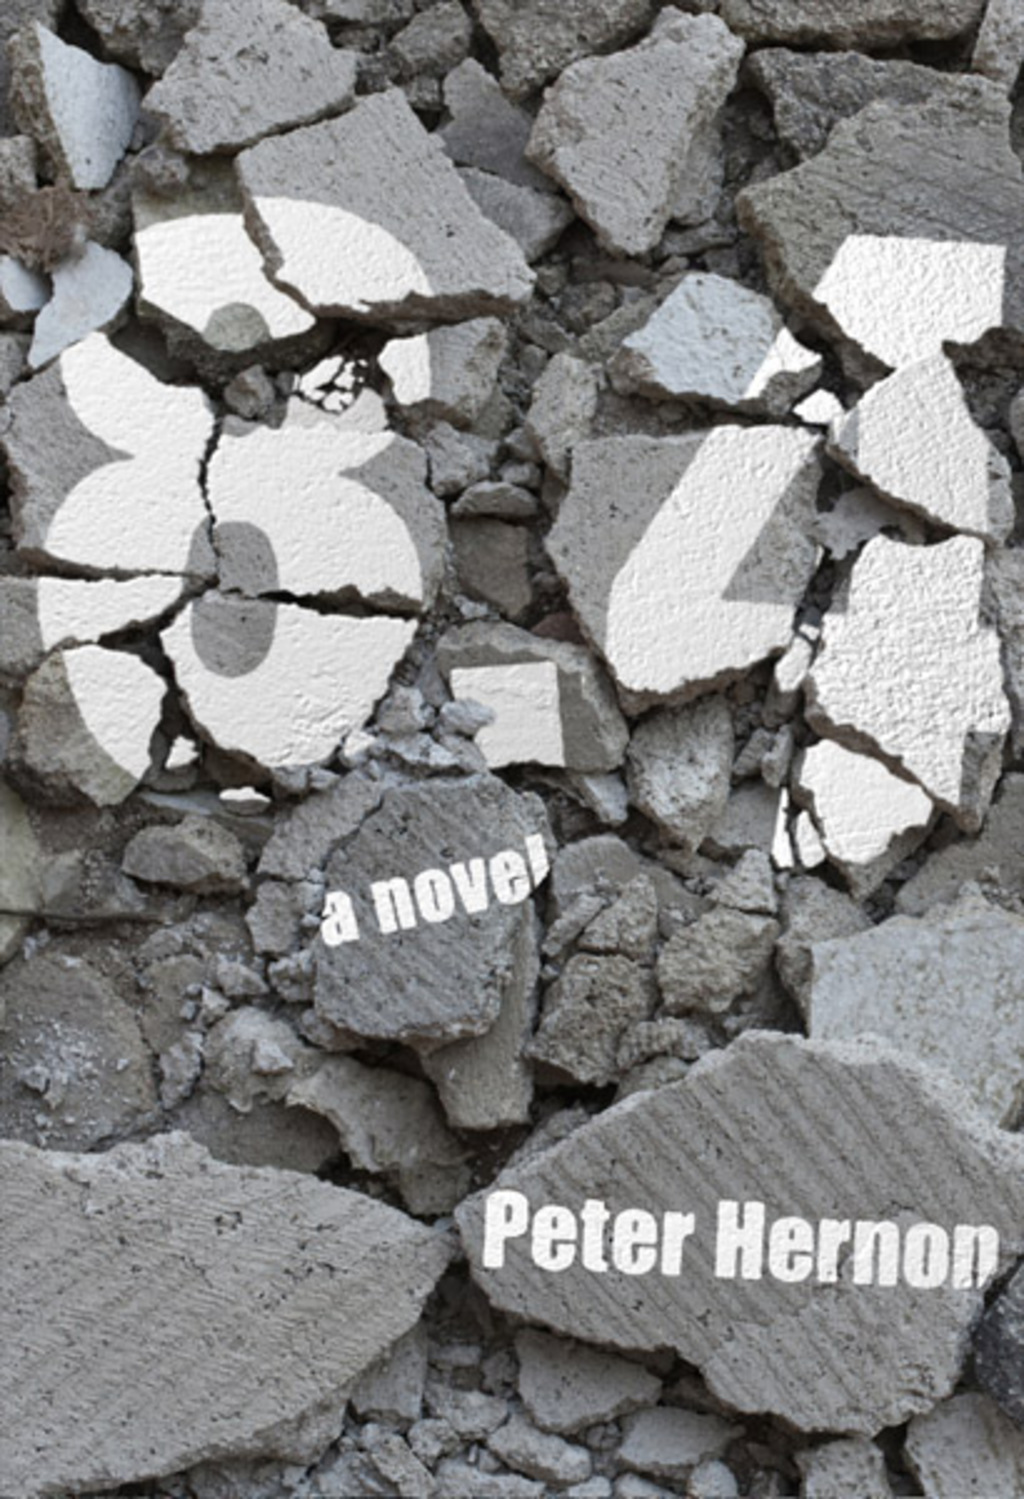 By Peter Hernon PRINTISBN: 9780515127133 E-TEXT ISBN: 9781891053627 Edition: 0